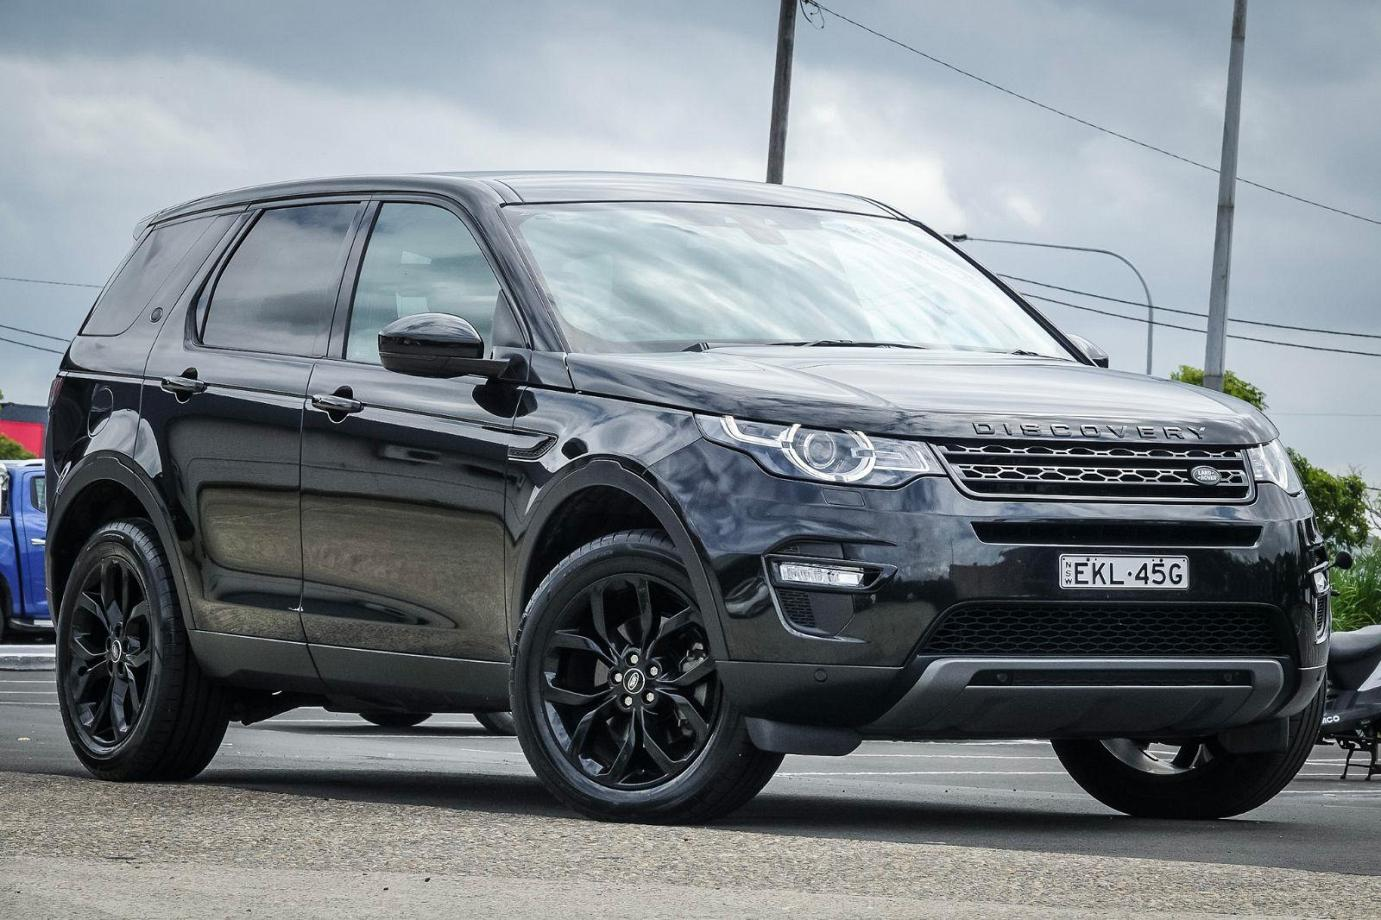 2016 Land Rover Discovery Sport L550 MY16.5 SD4 HSE. Wagon 5dr Spts Auto 9sp 4x4 2.2DT